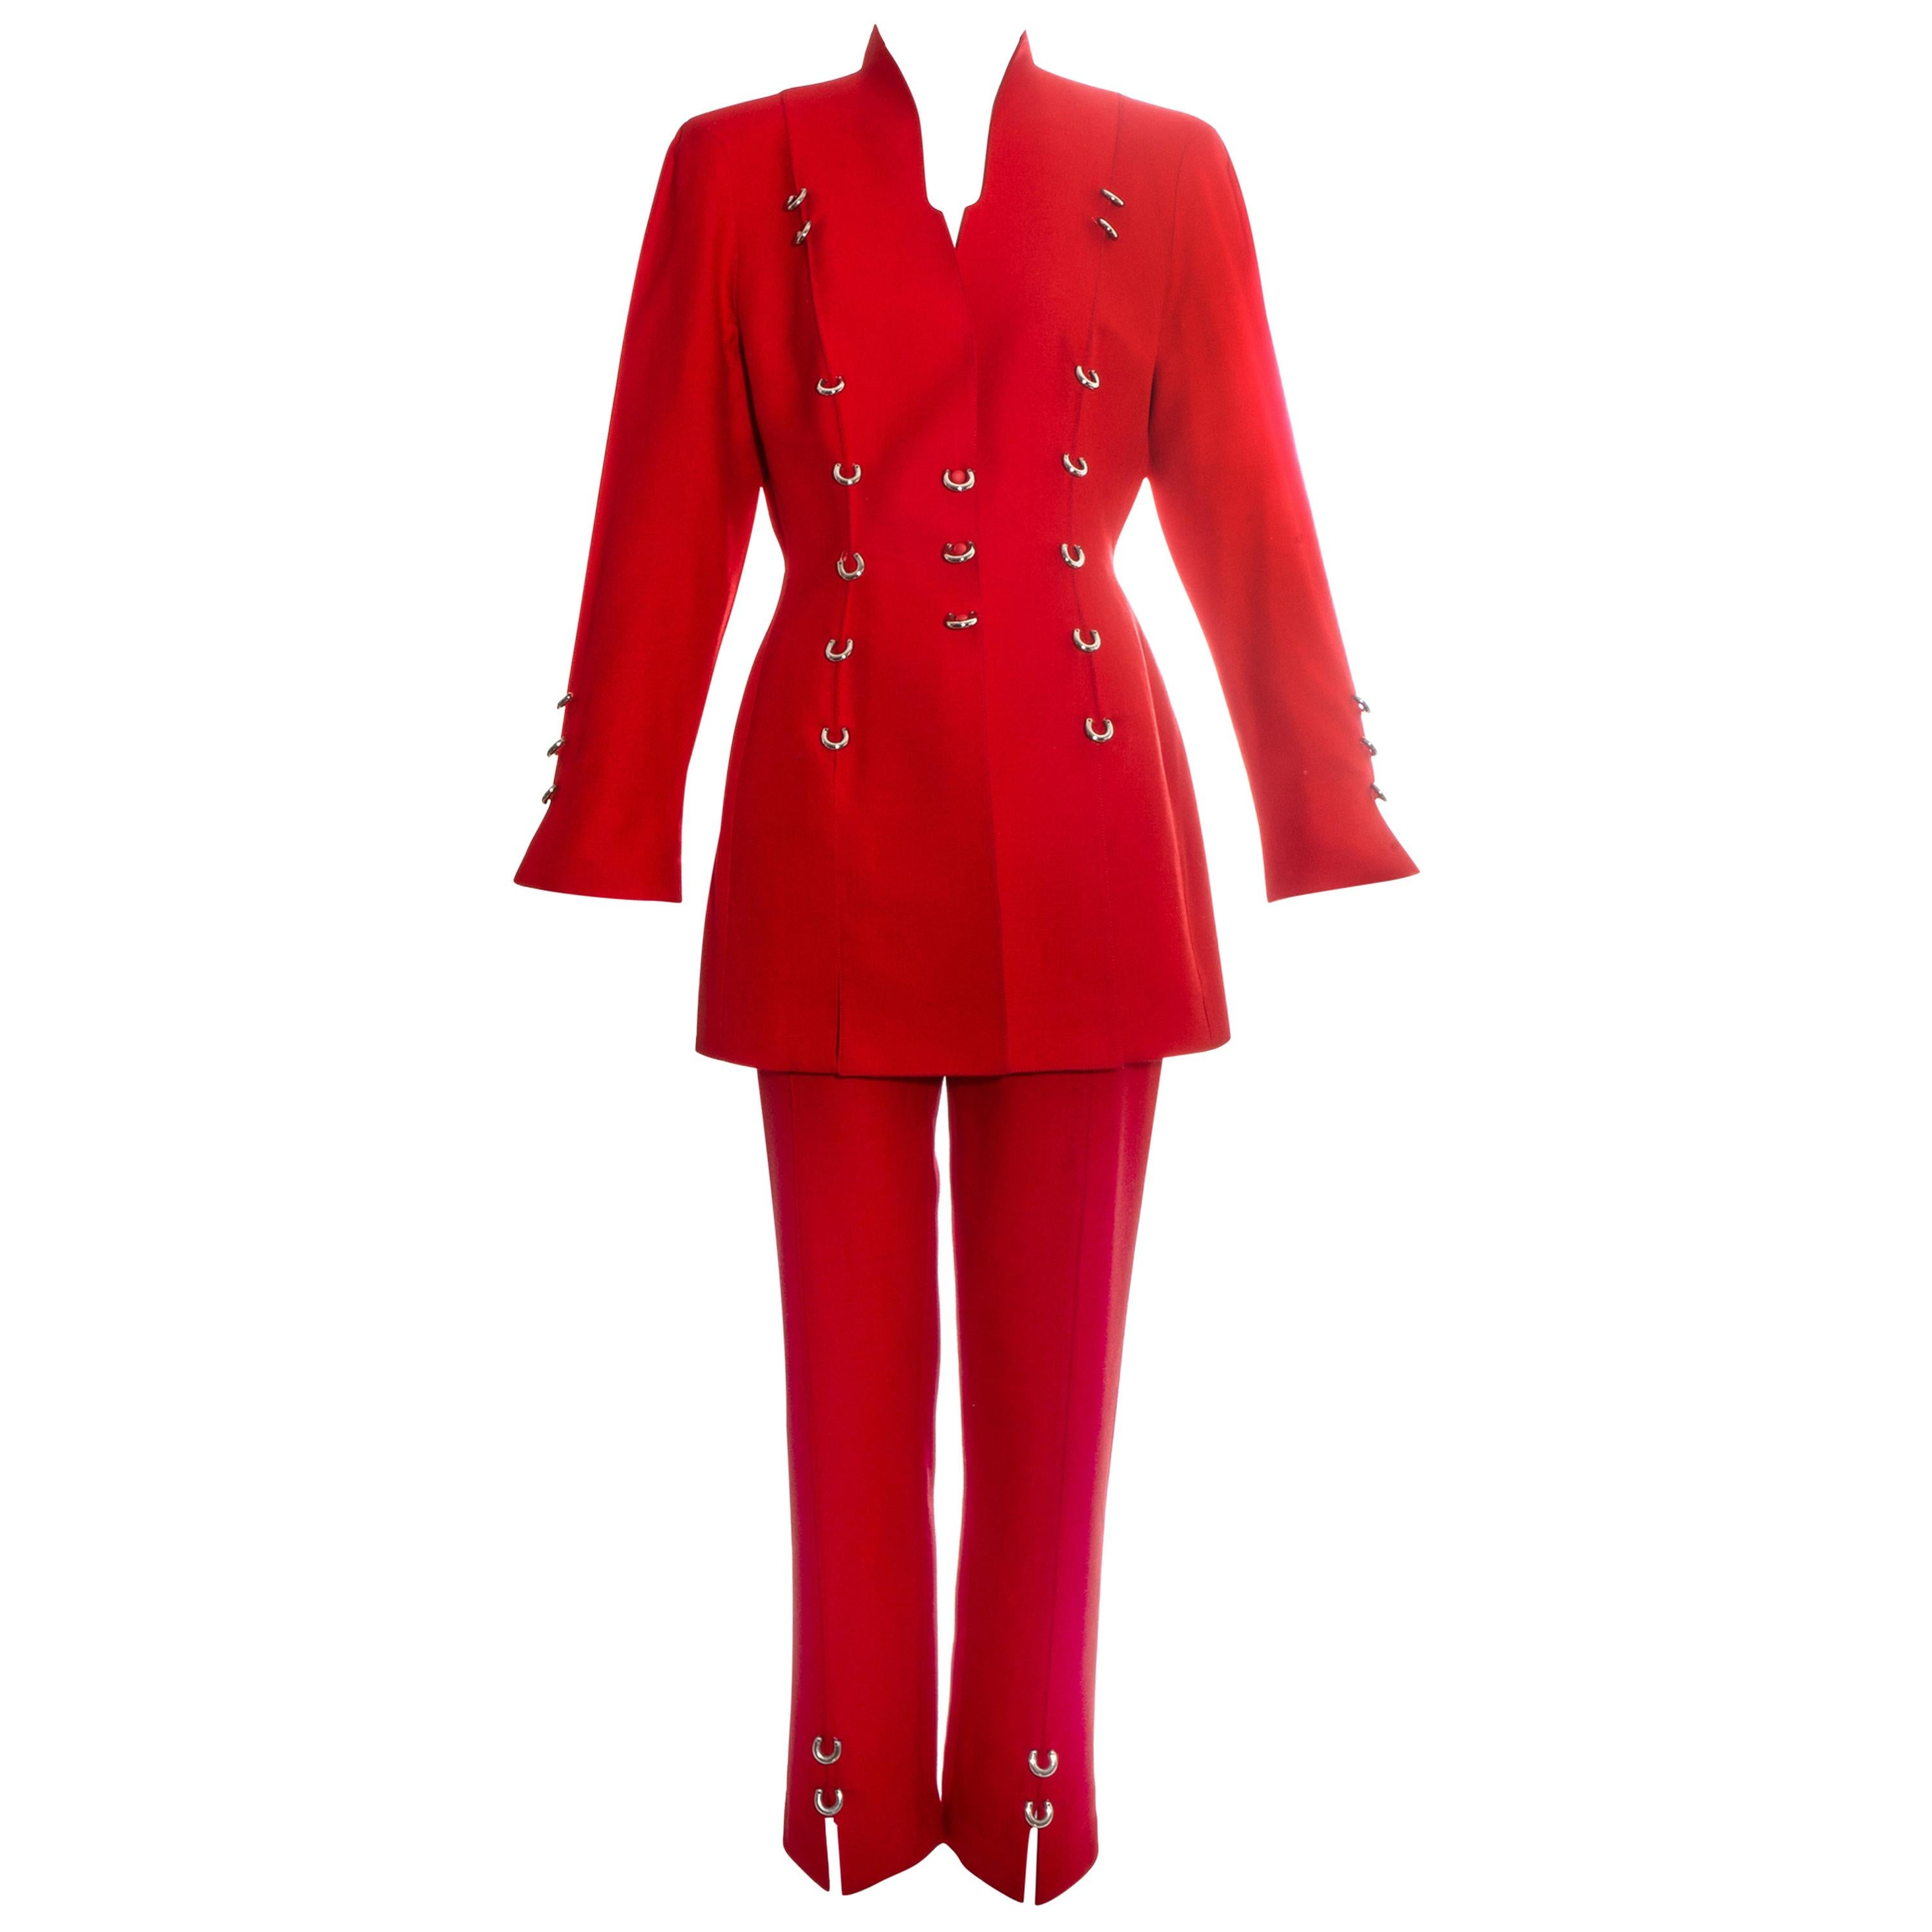 Thierry Mugler red pant suit with silver metal rings, c. 1990s